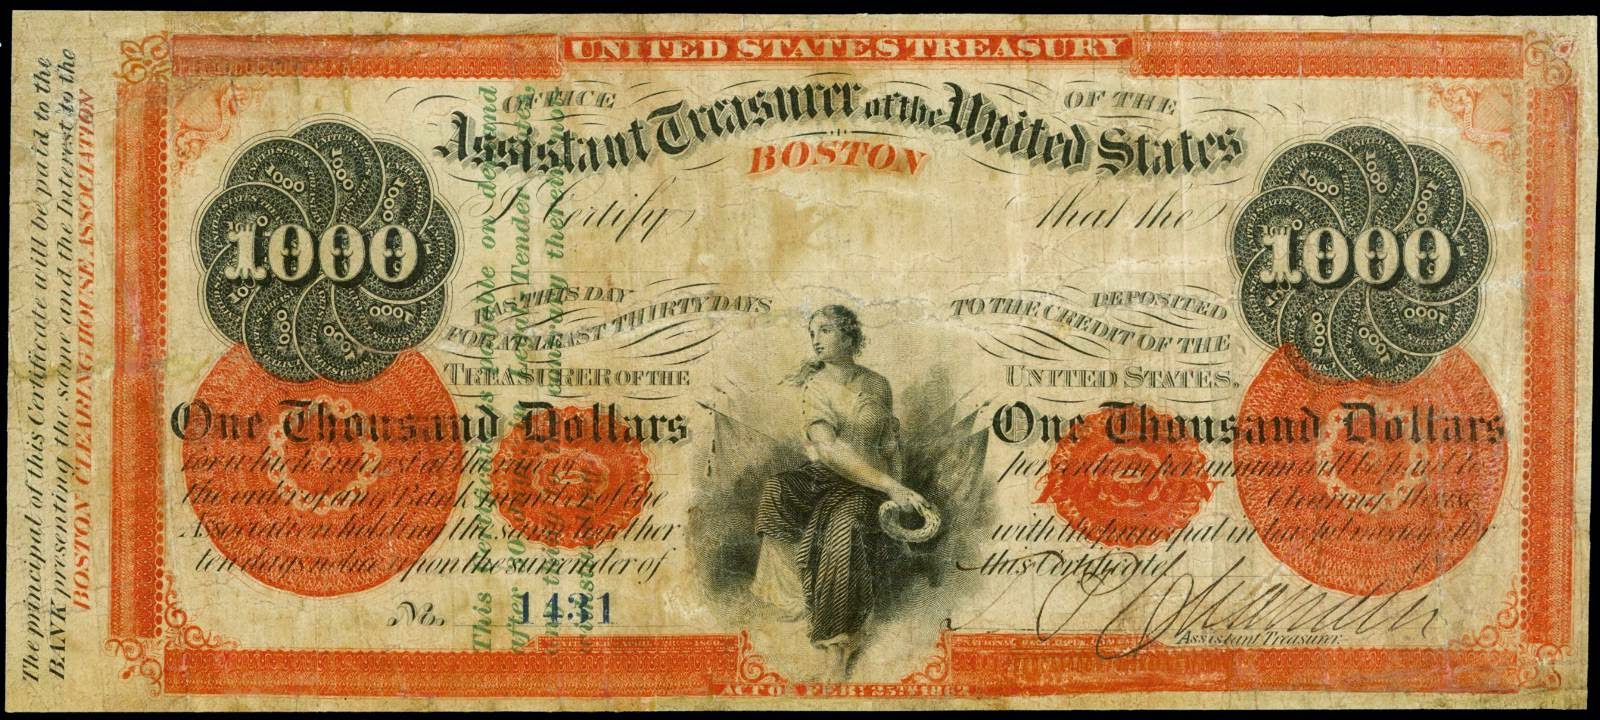 1862 1000 Dollar Boston Designated Depositary Certificate